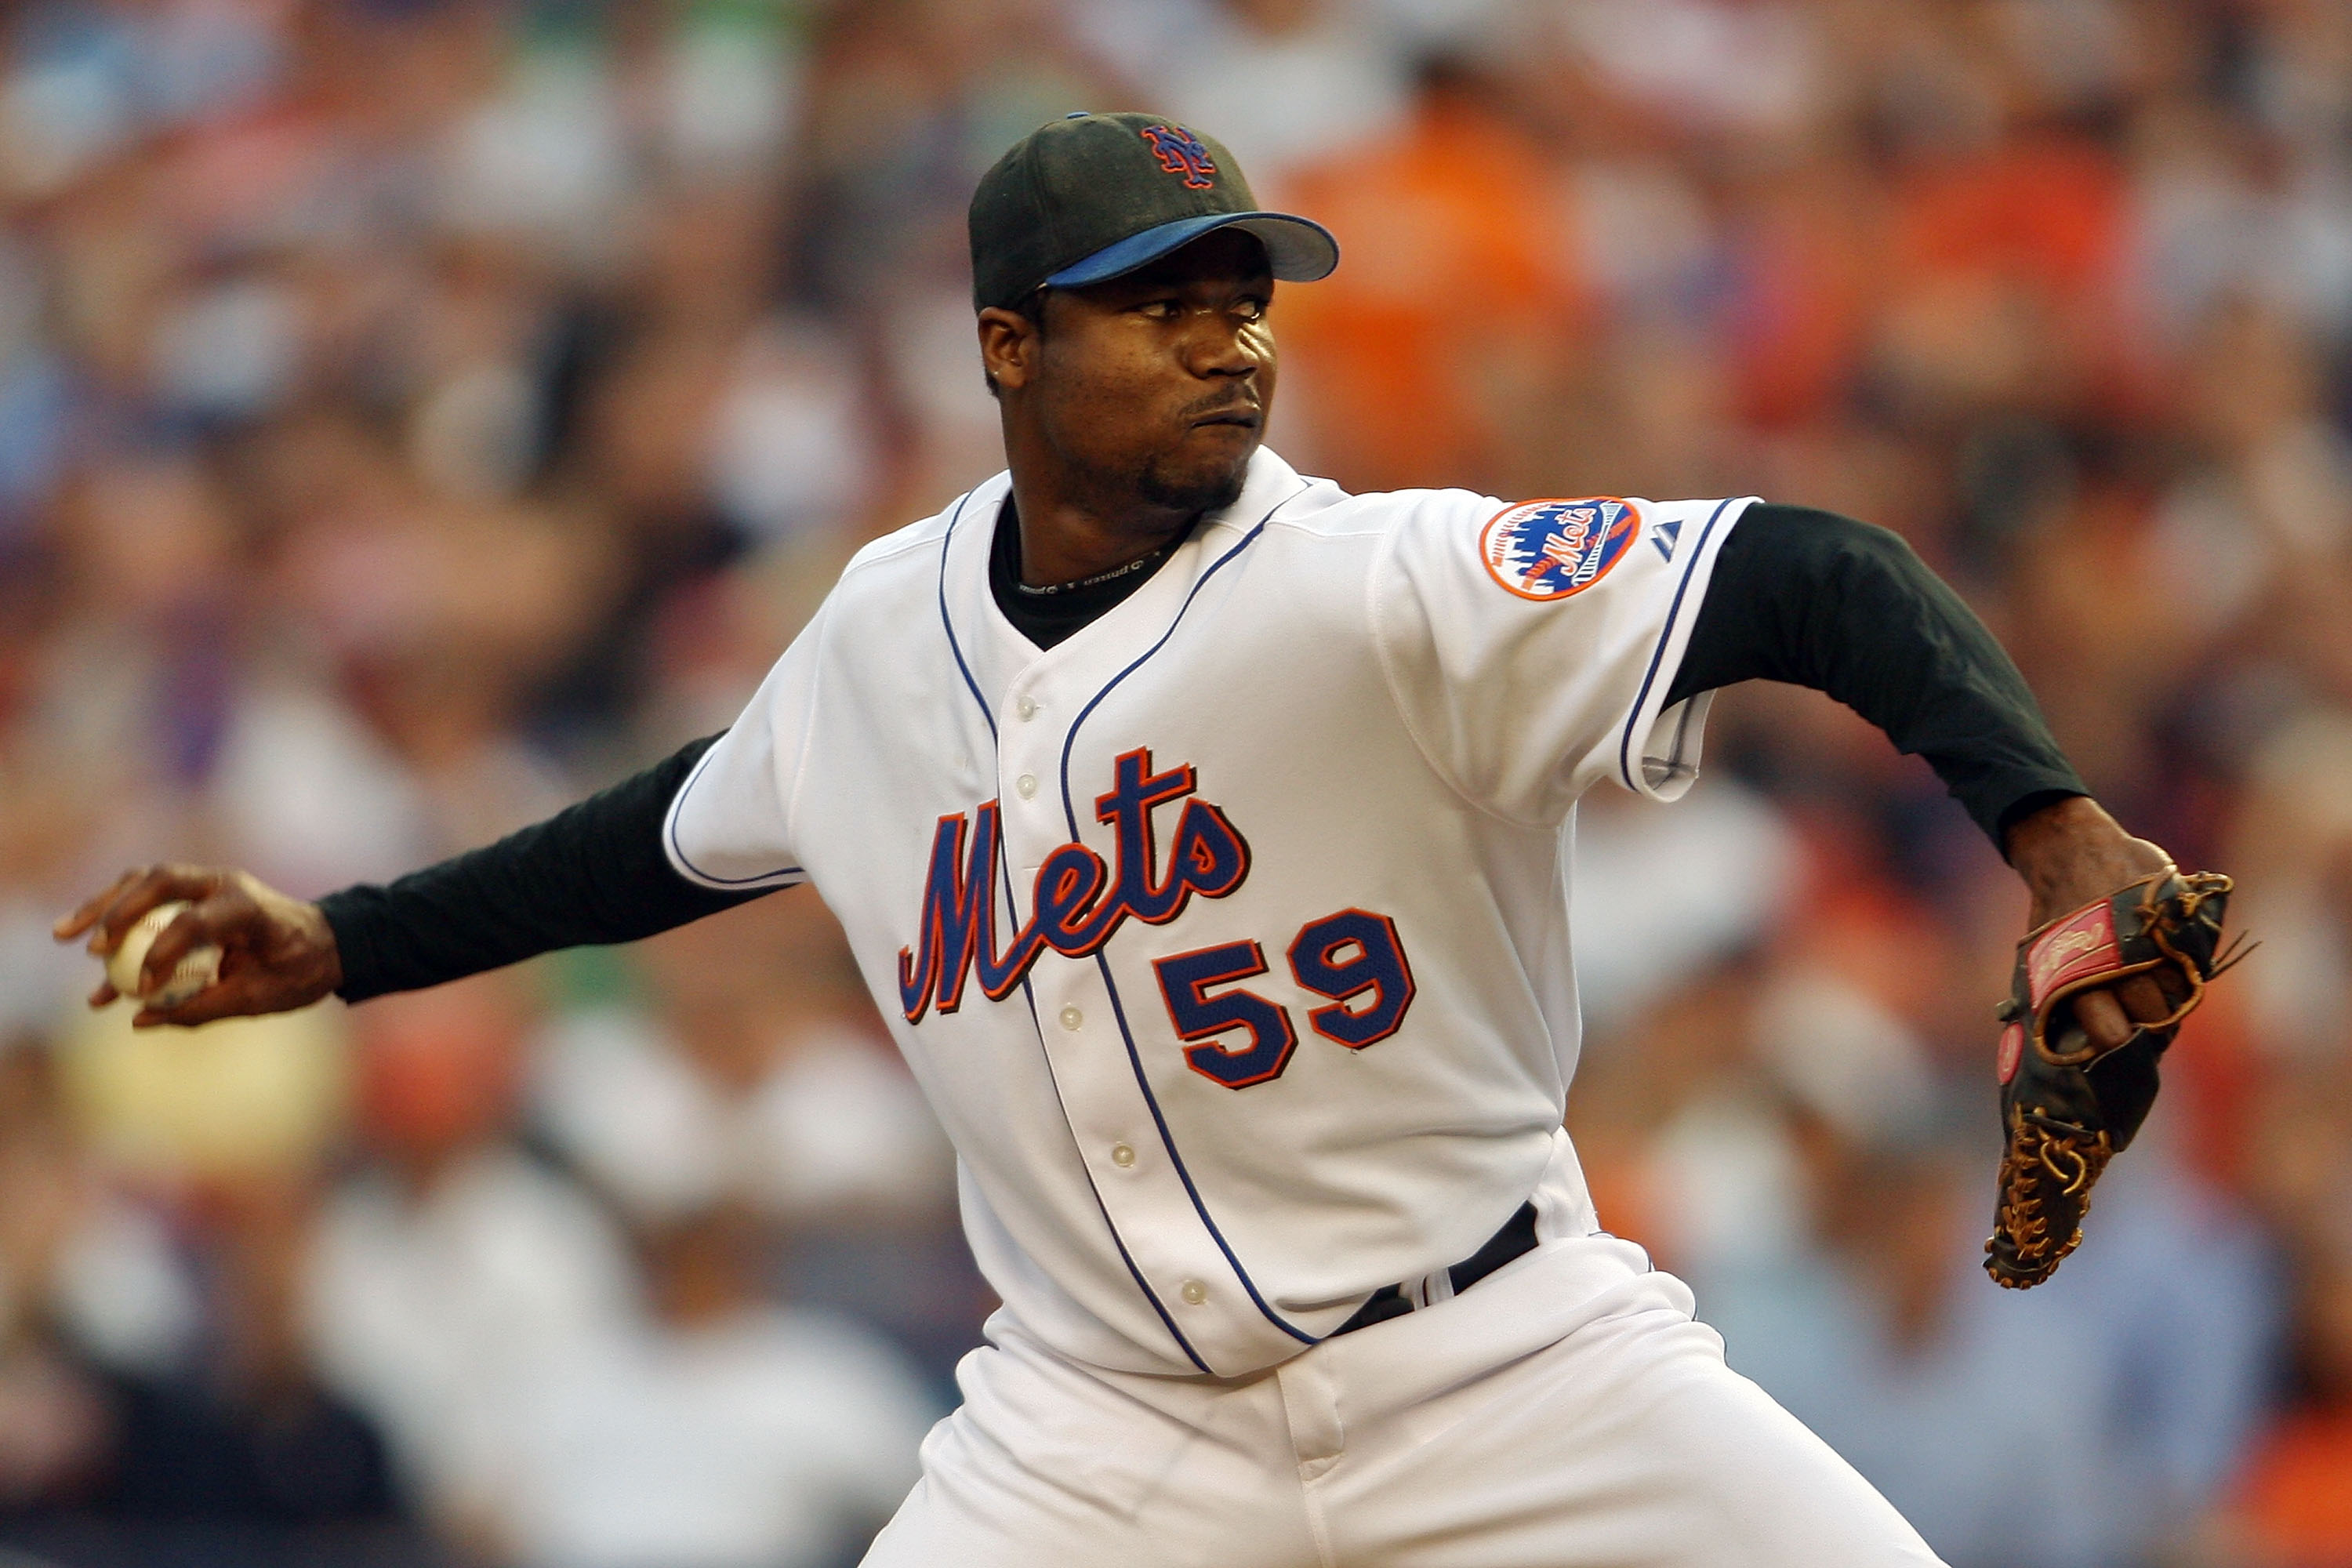 NEW YORK - OCTOBER 04:  Guillermo Mota #59 of the New York Mets pitches against the Los Angeles Dodgers during game one of the National League Division Series at Shea Stadium on October 4, 2006 in the Flushing neighborhood of Queens borough of New York Ci